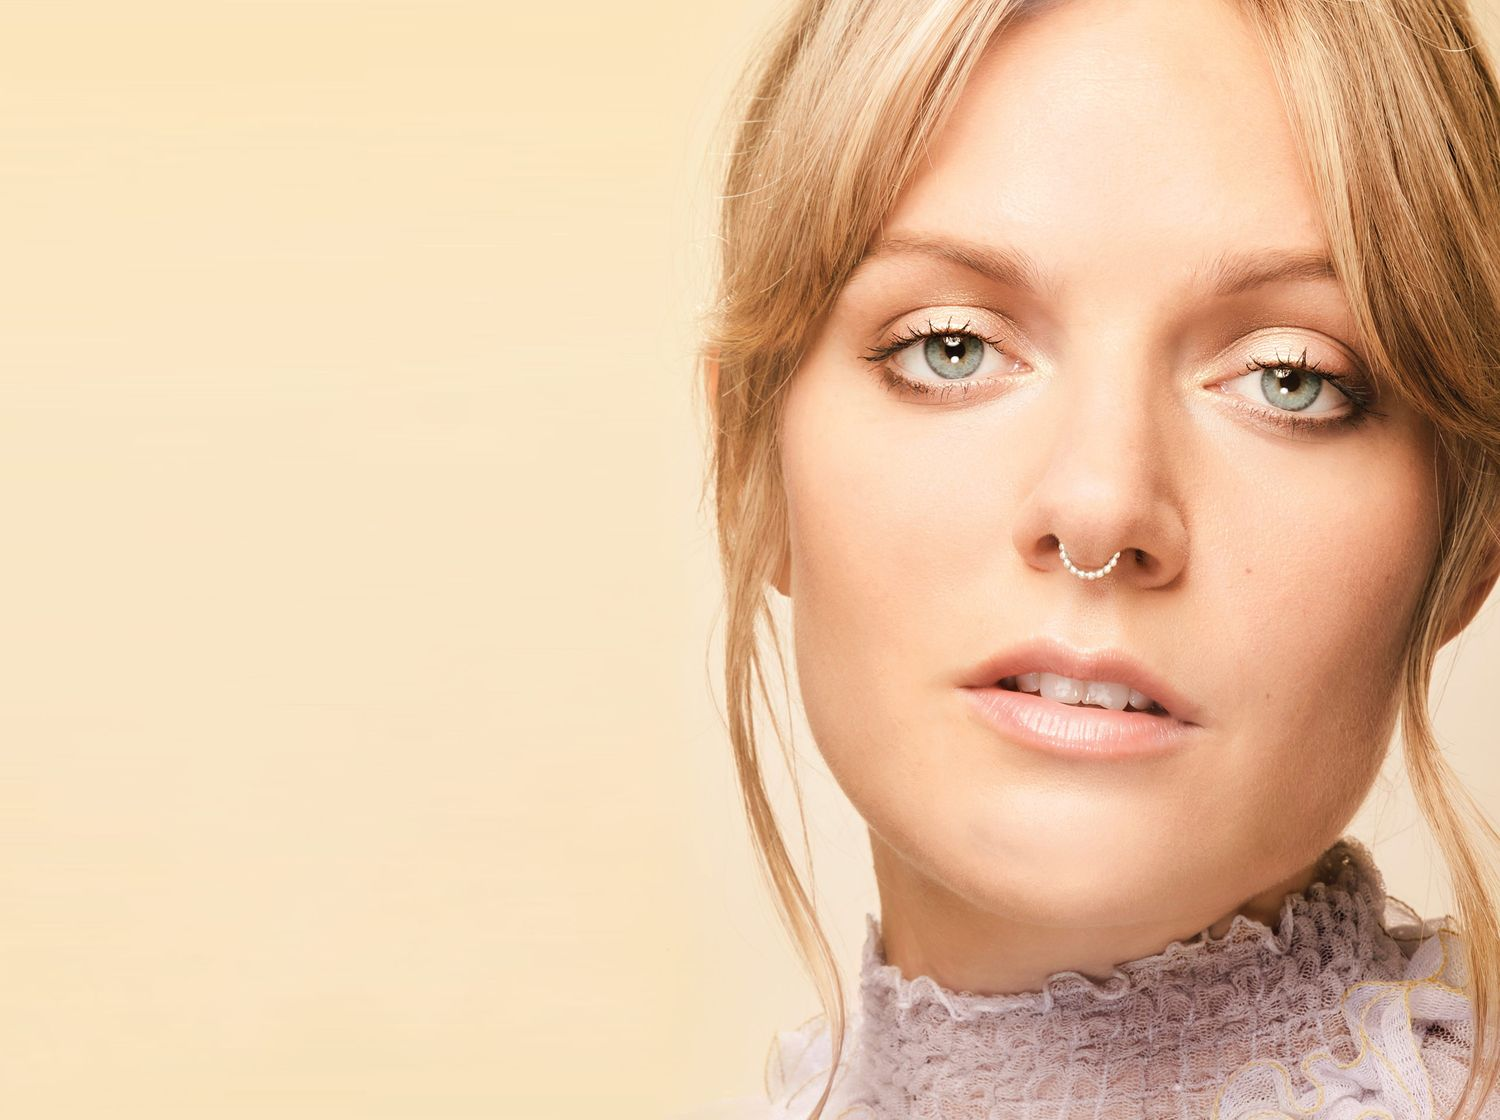 Tove Lo nudes (82 photo), Tits, Leaked, Twitter, braless 2018